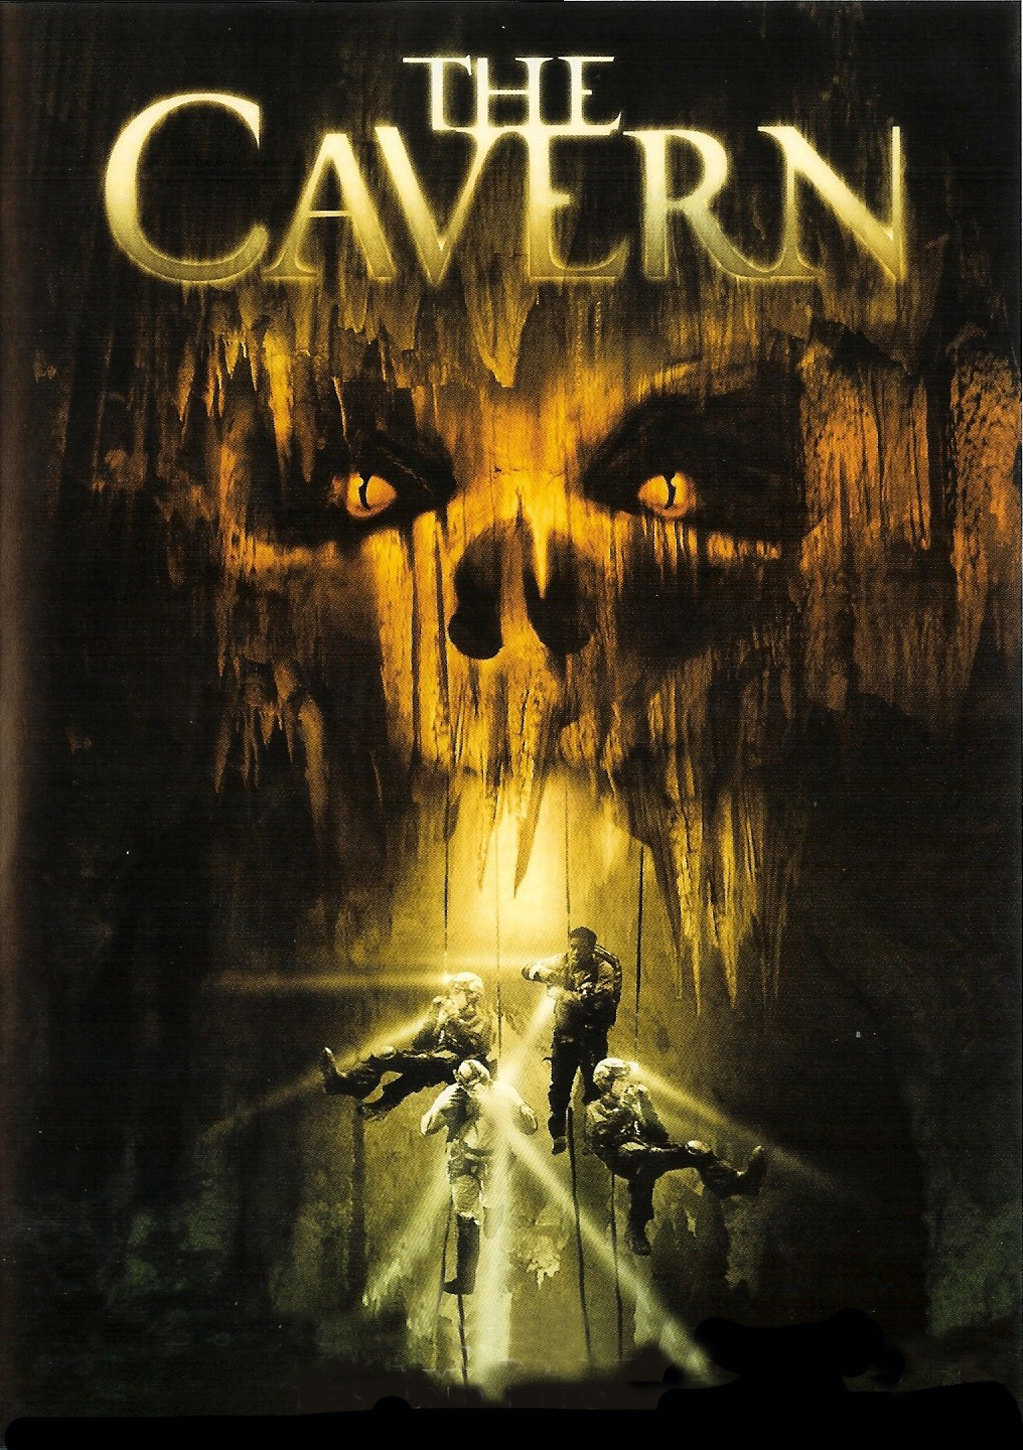 The Cavern horror movie poster